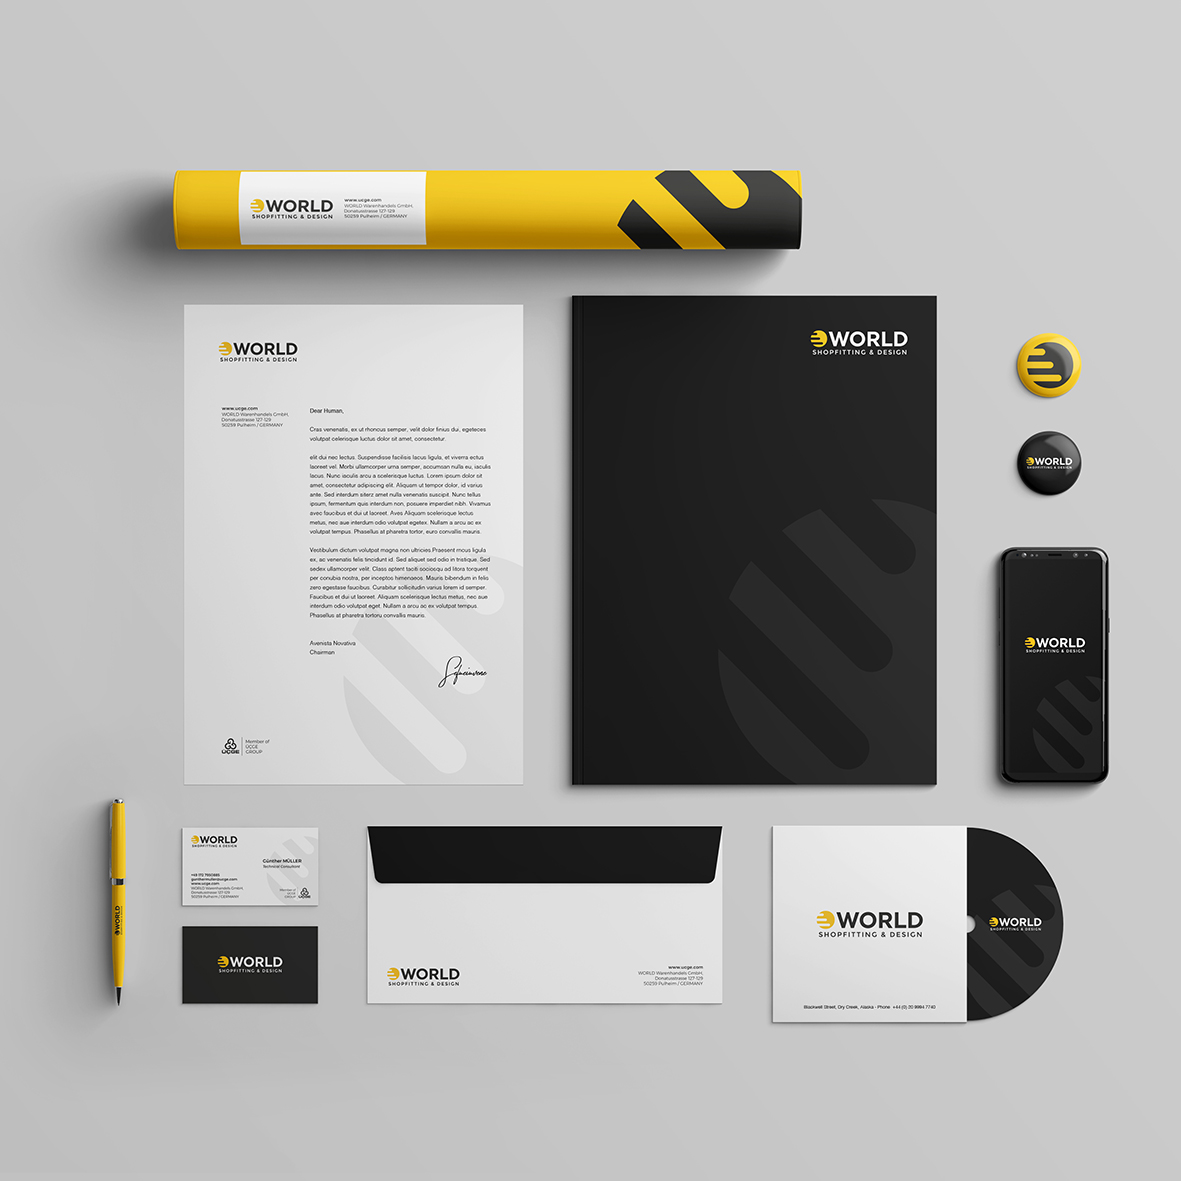 world_shopfitting_design_corporate_identity_branding_roll_folder_paper_pen_businesscard